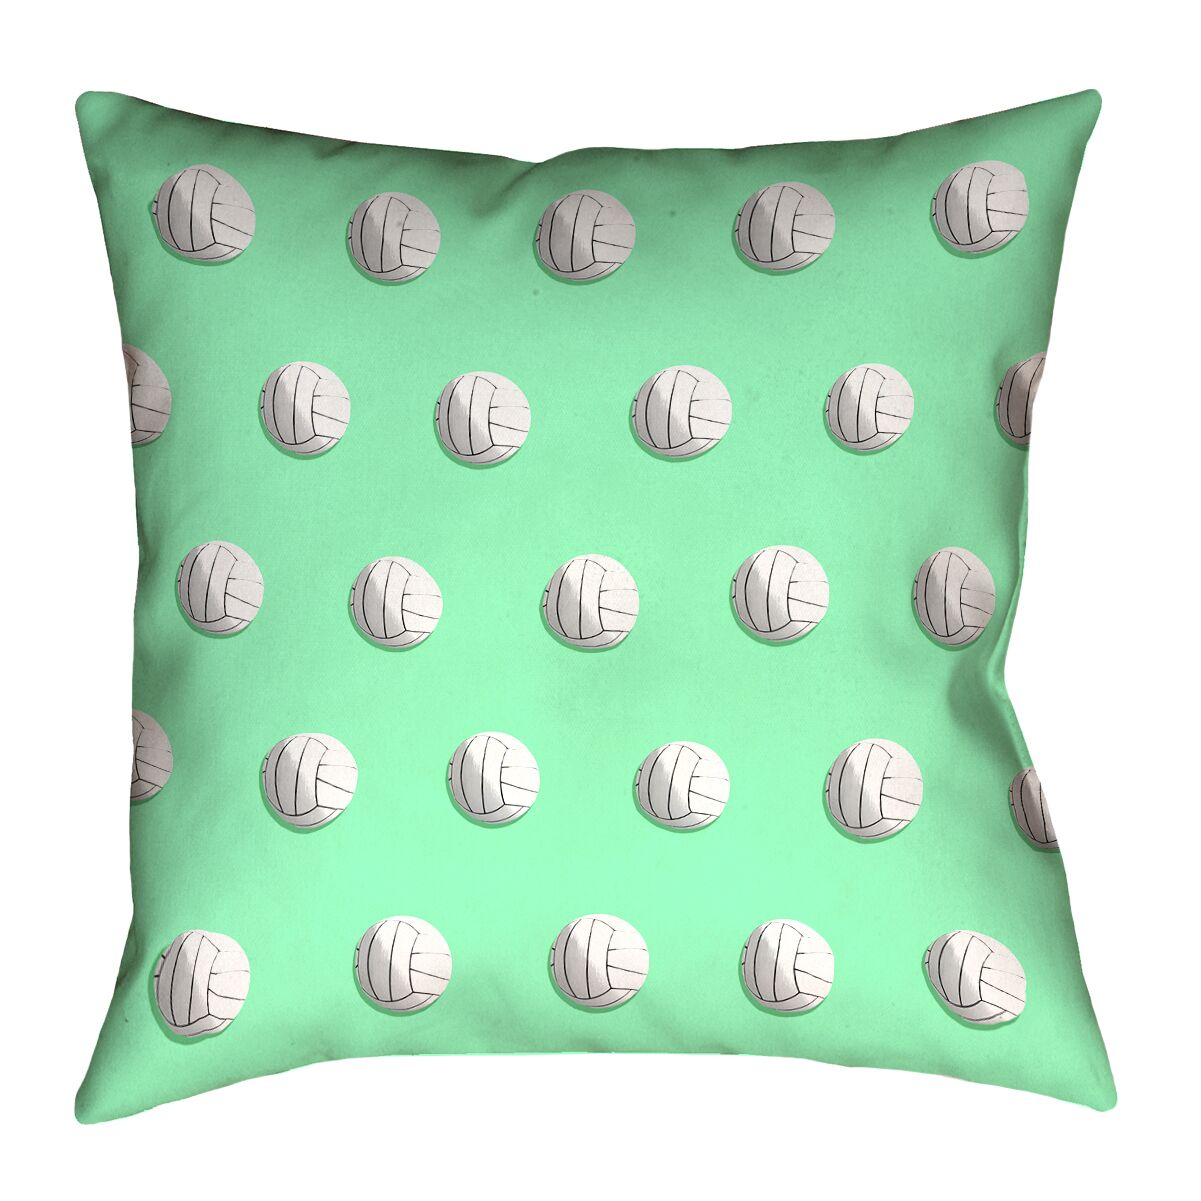 Volleyball 100% Cotton Throw Pillow with Concealed Zipper Color: Green